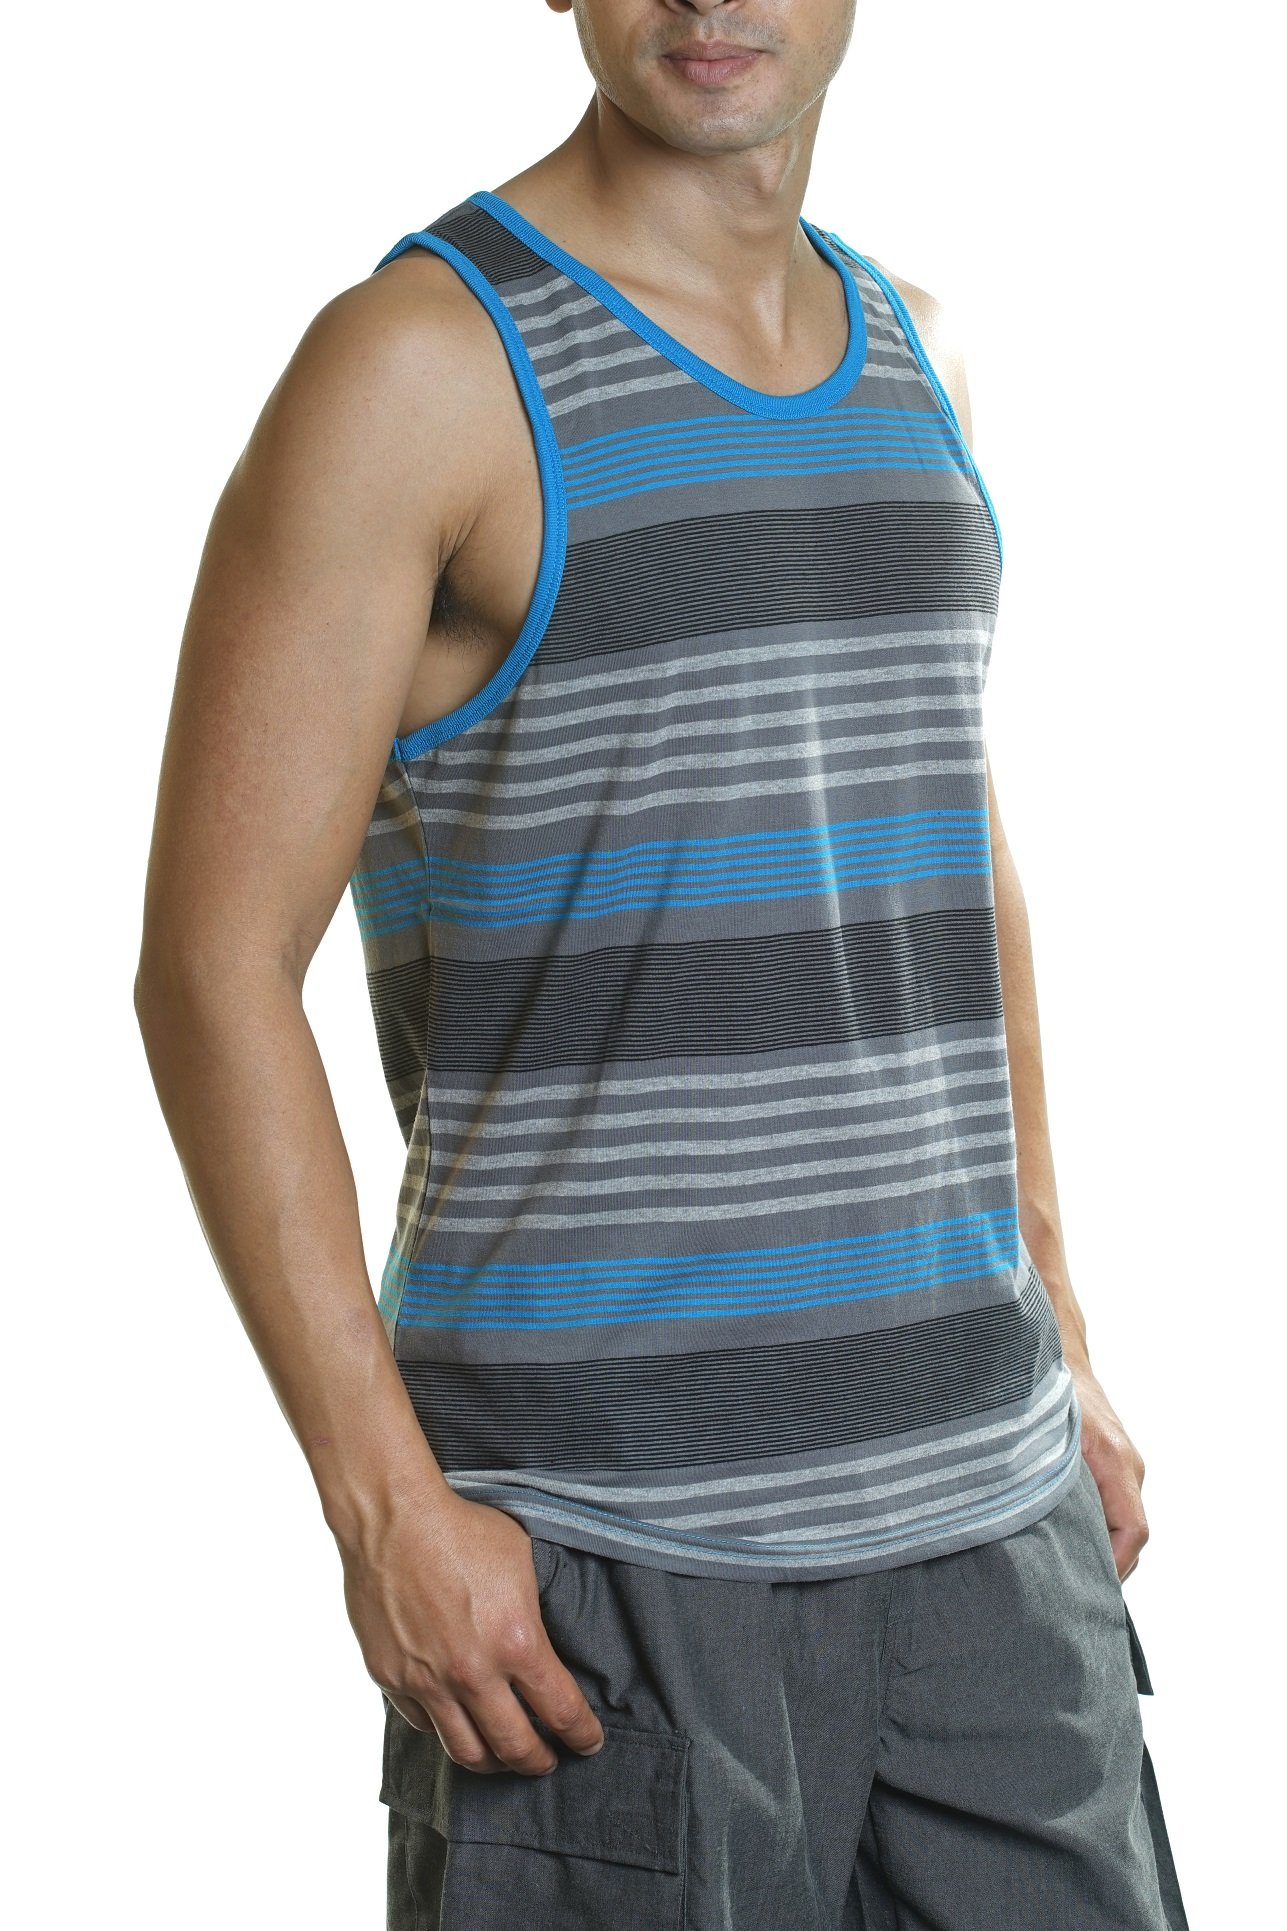 YAGO Men's Striped Tank Top Slim fit (Blue/Gray/Black, Small) by YAGO